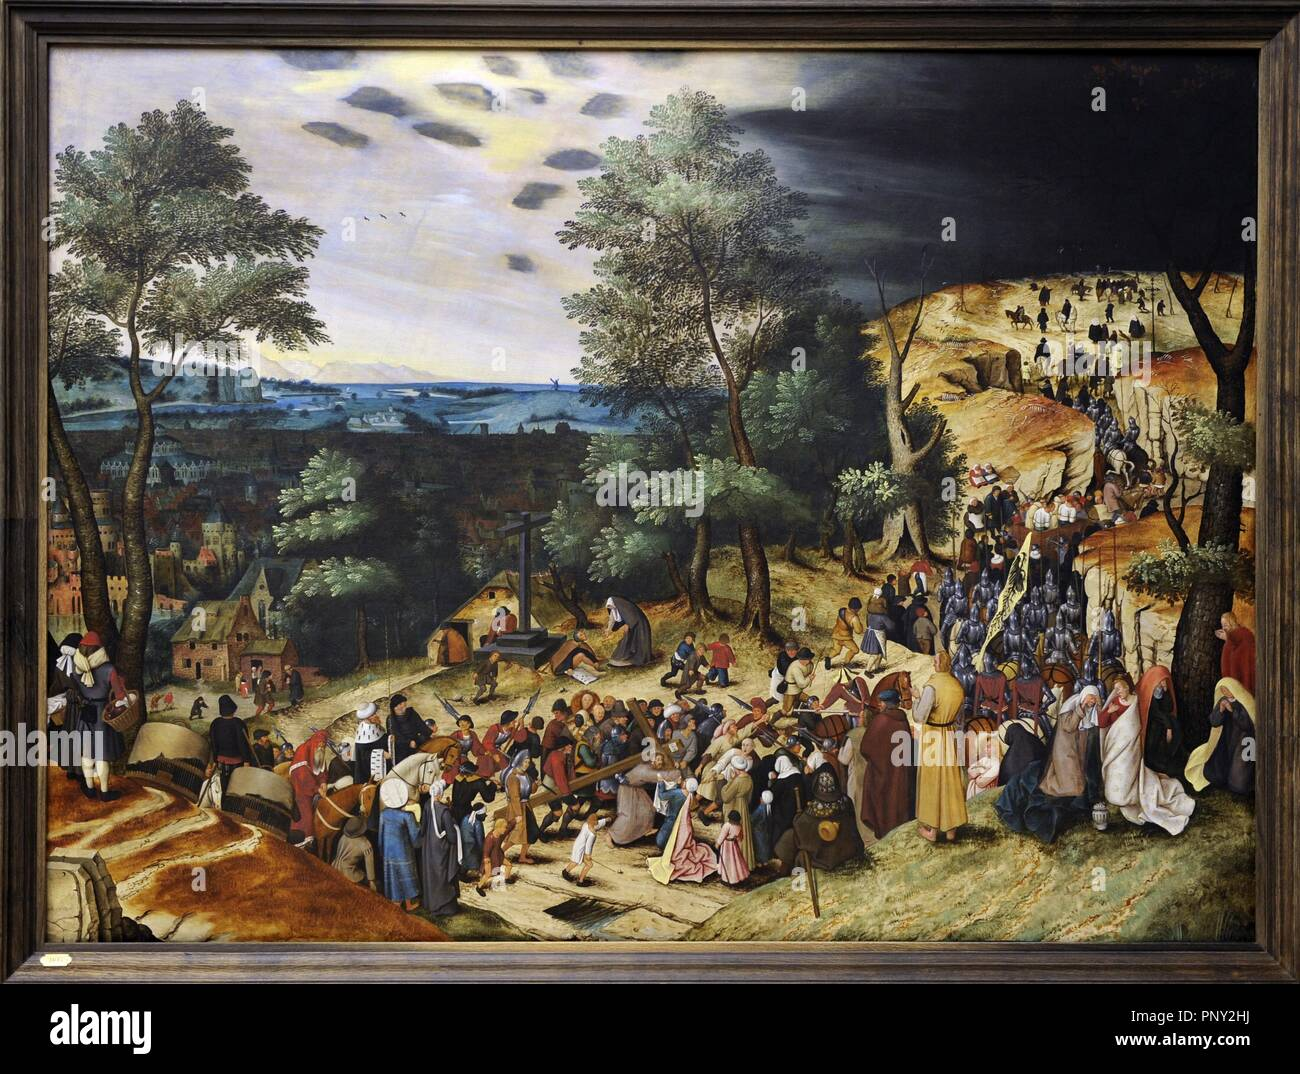 Pieter Brueghel the Younger (1564-1638). Flemish painter. The Procession to Calvary, 1602. National Museum of Art. Copenhagen. Denmark. Stock Photo